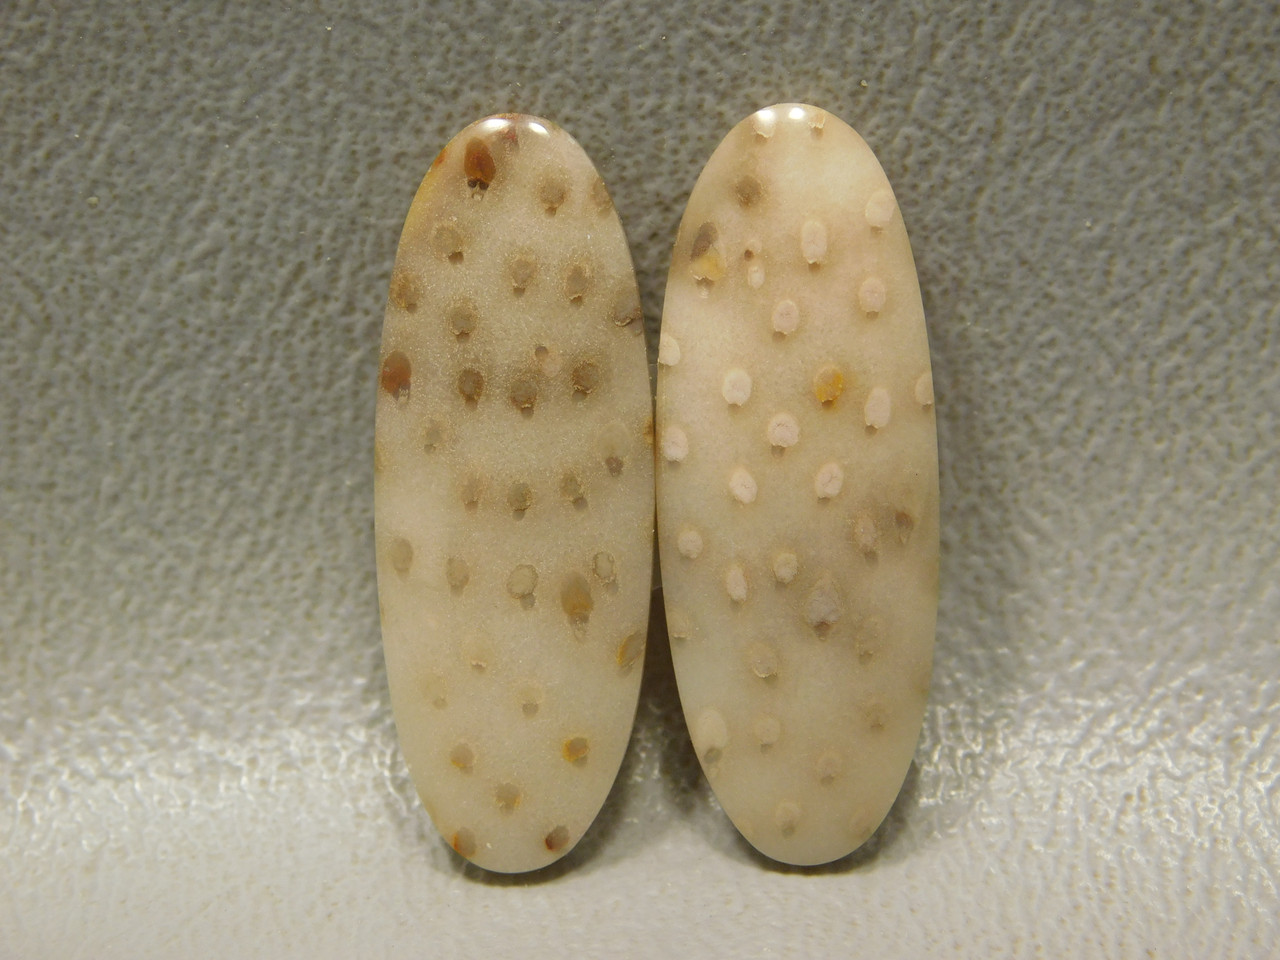 Fossilized Palm Wood Matched Pairs Cabochons Stones #9